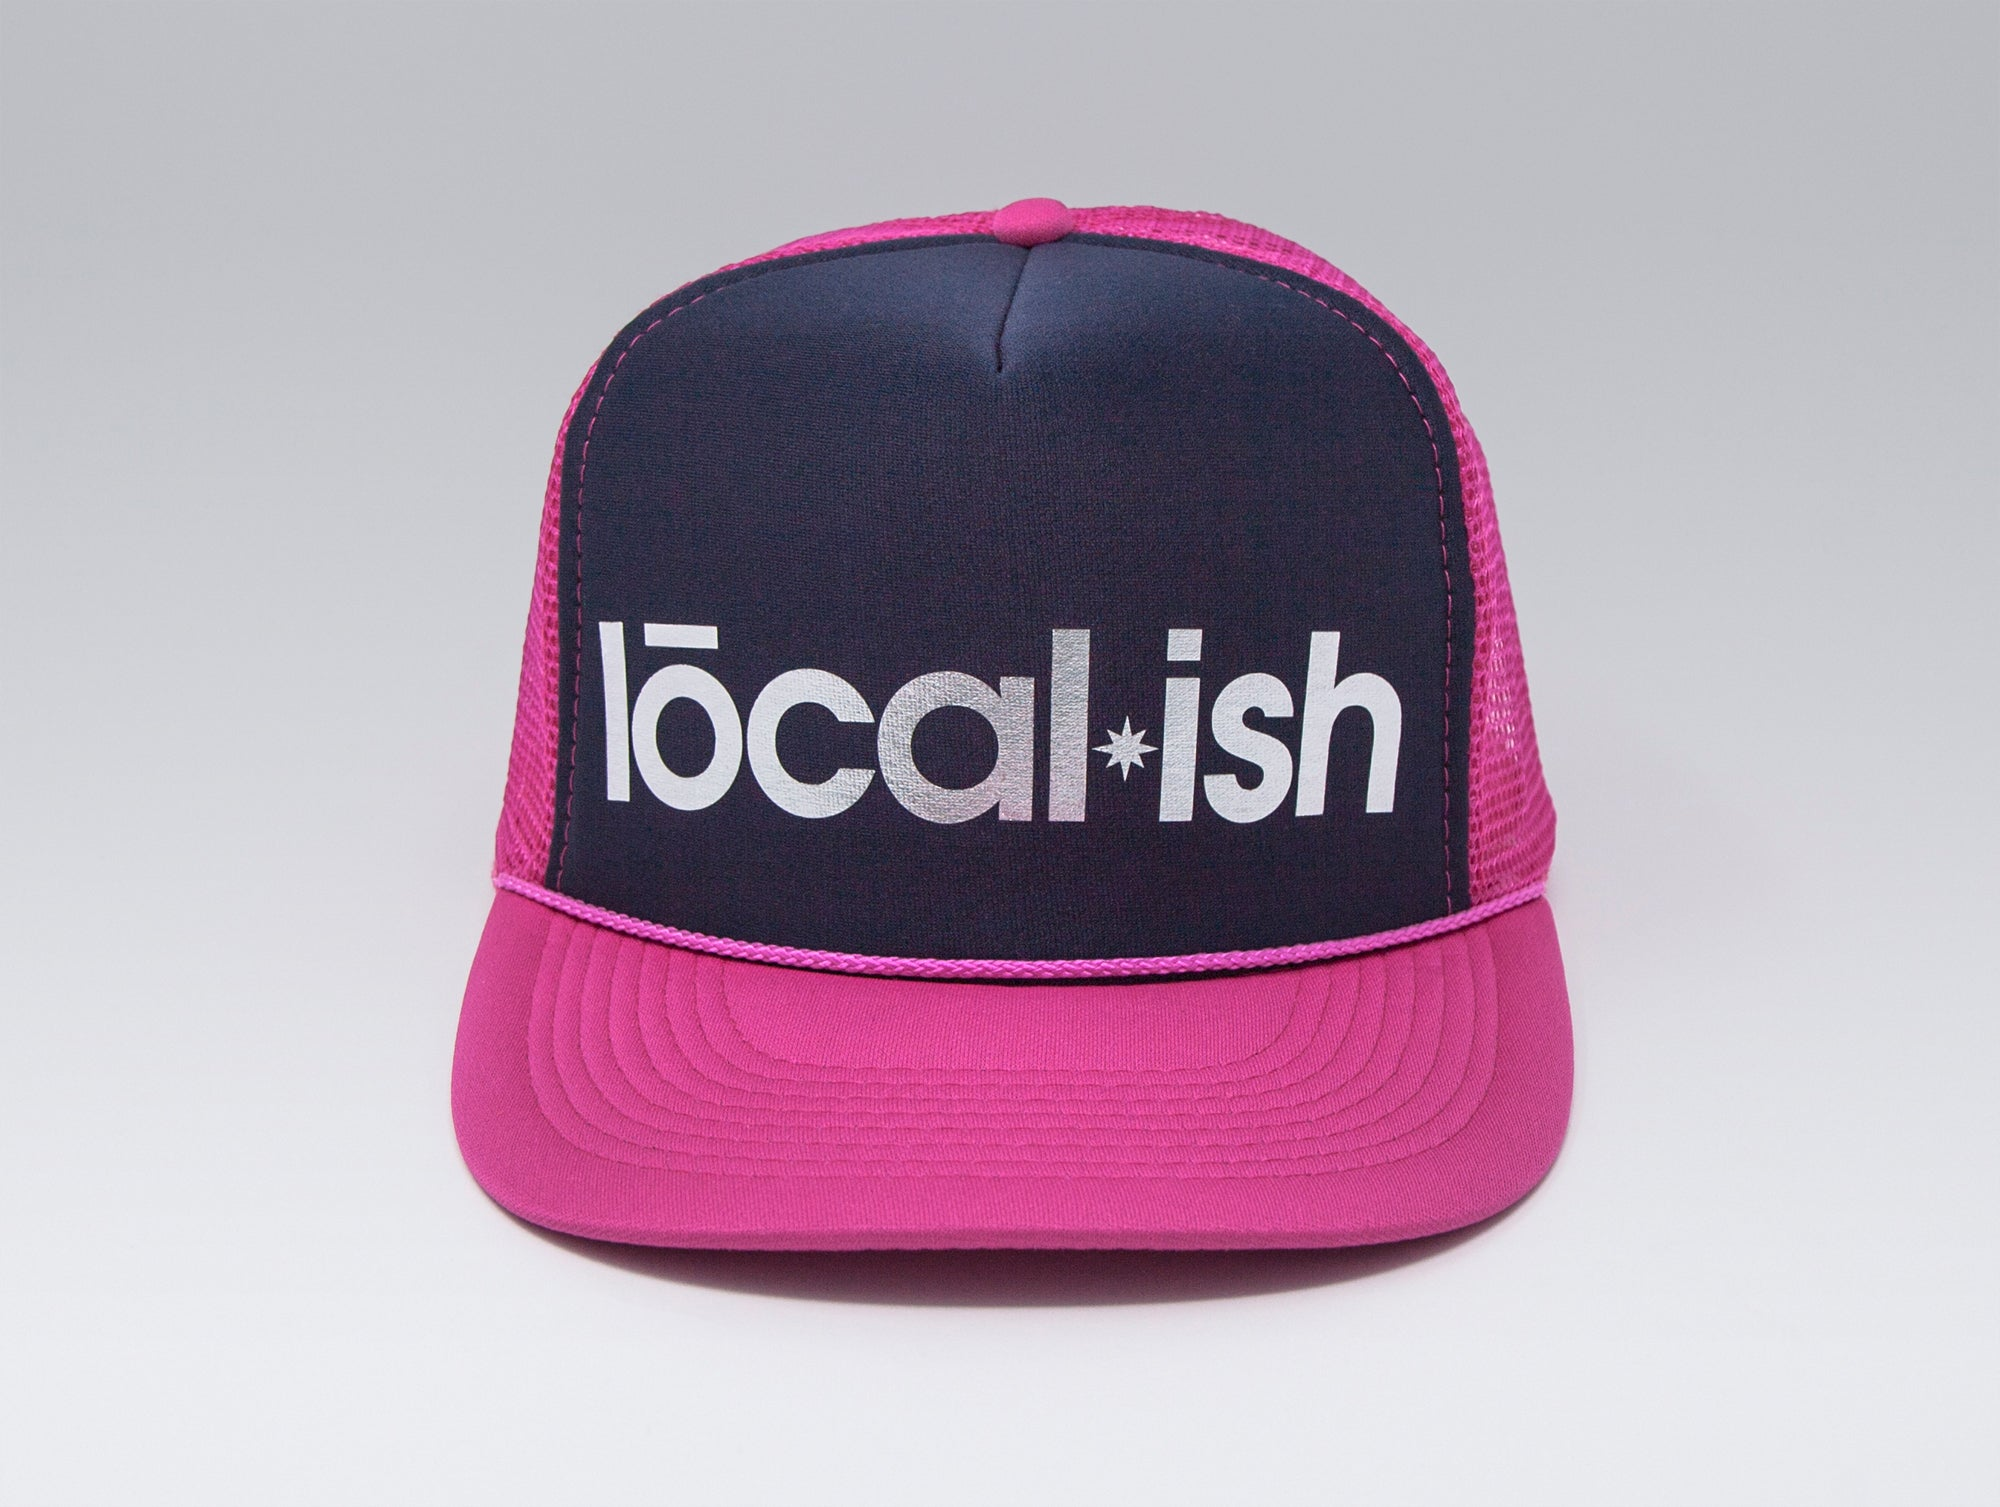 Localish Foil Printed Trucker Hat - Navy & Magenta - center